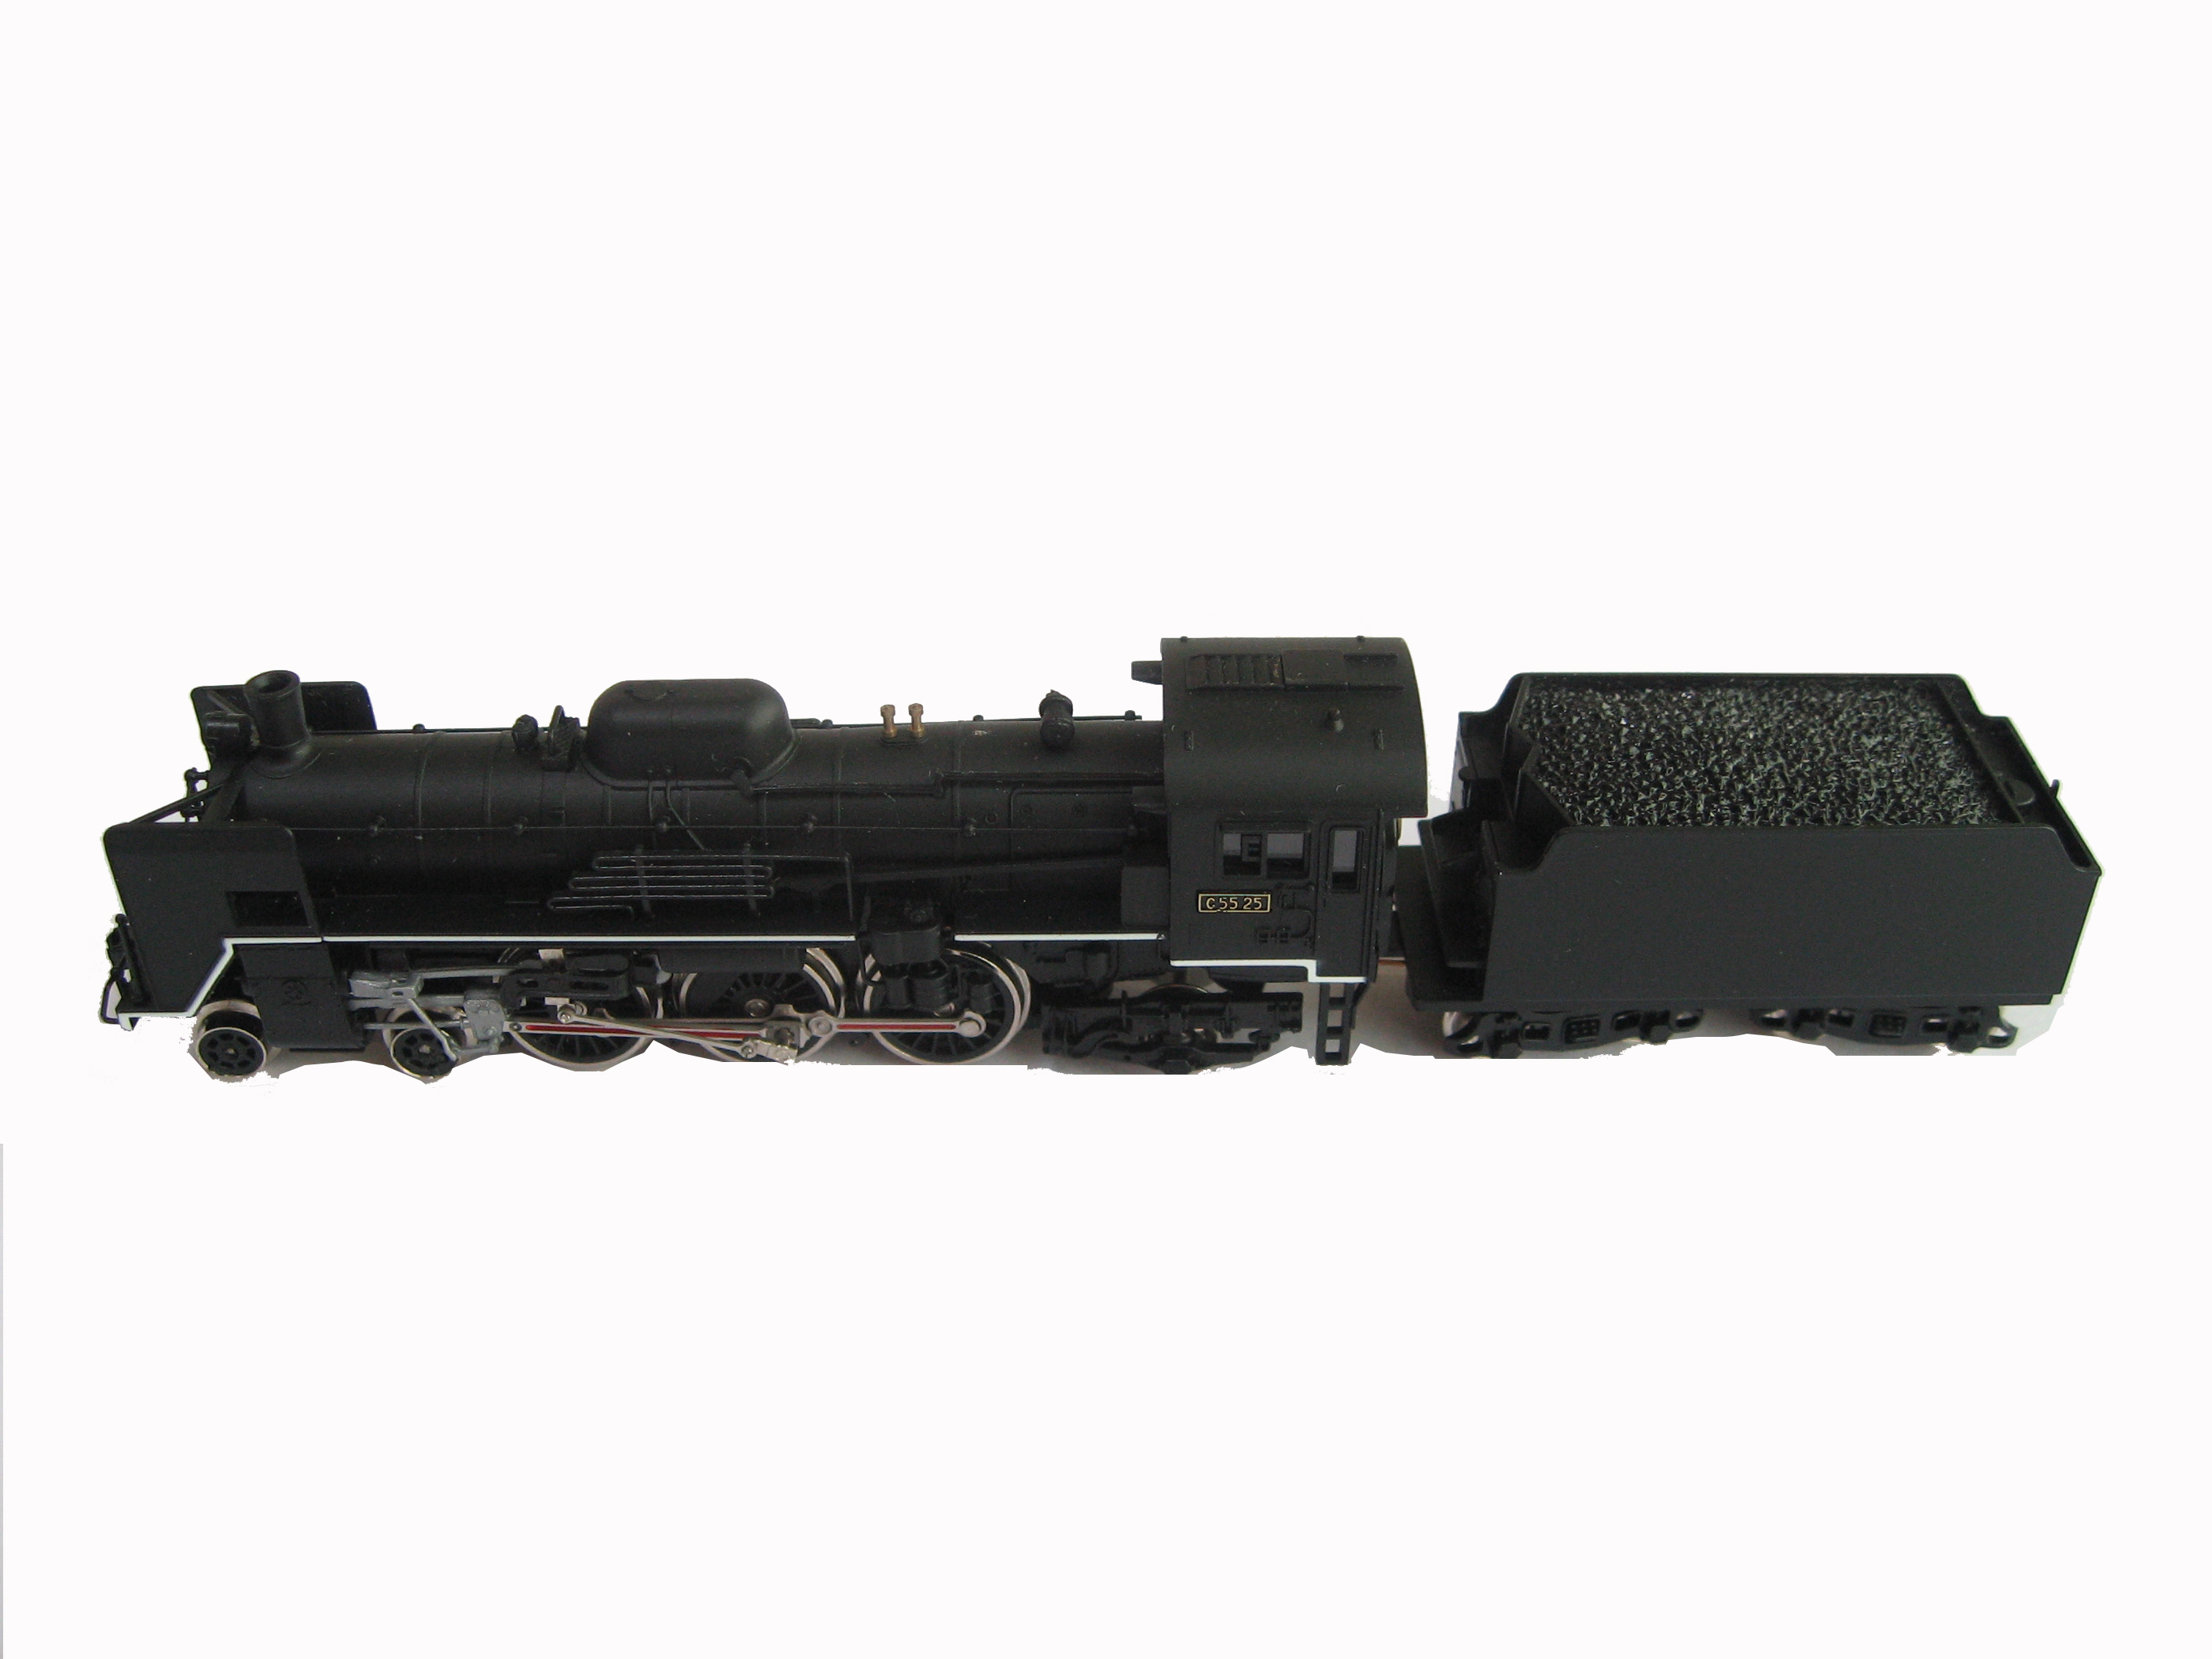 HO Scale Train Model Example